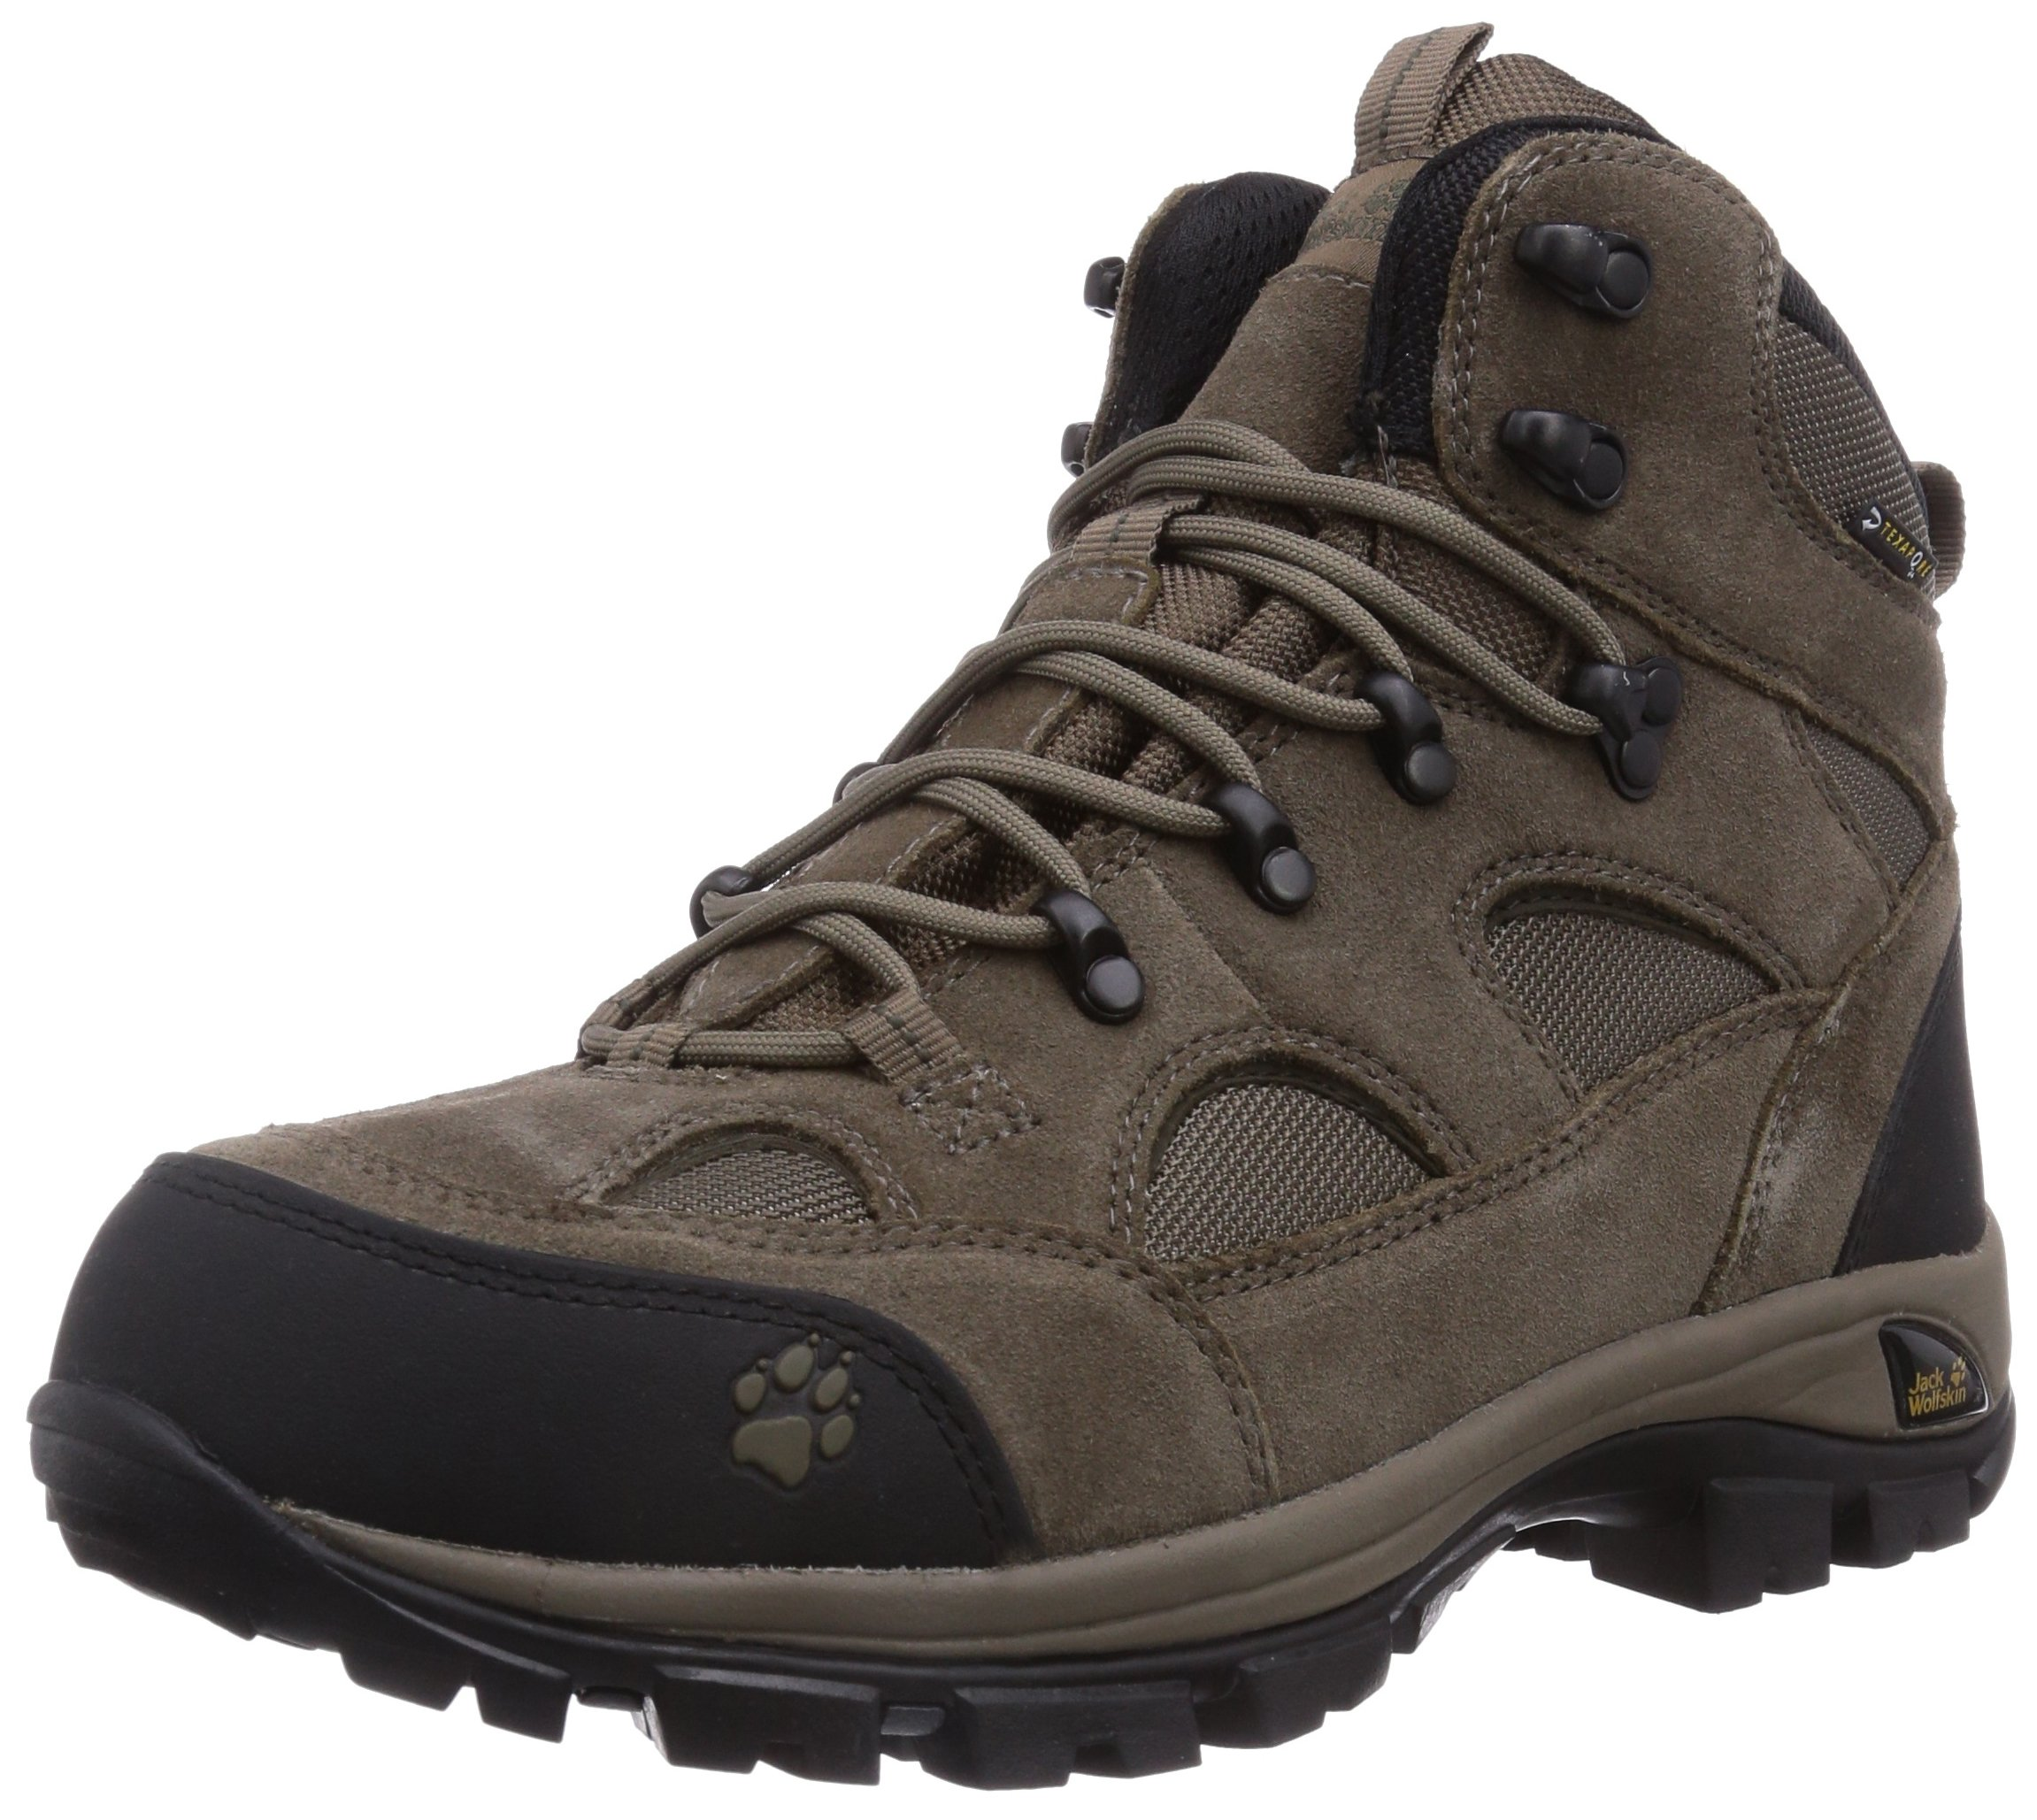 jack wolfskin all terrain texapore men mens trekking and hiking boots 7 uk new ebay. Black Bedroom Furniture Sets. Home Design Ideas